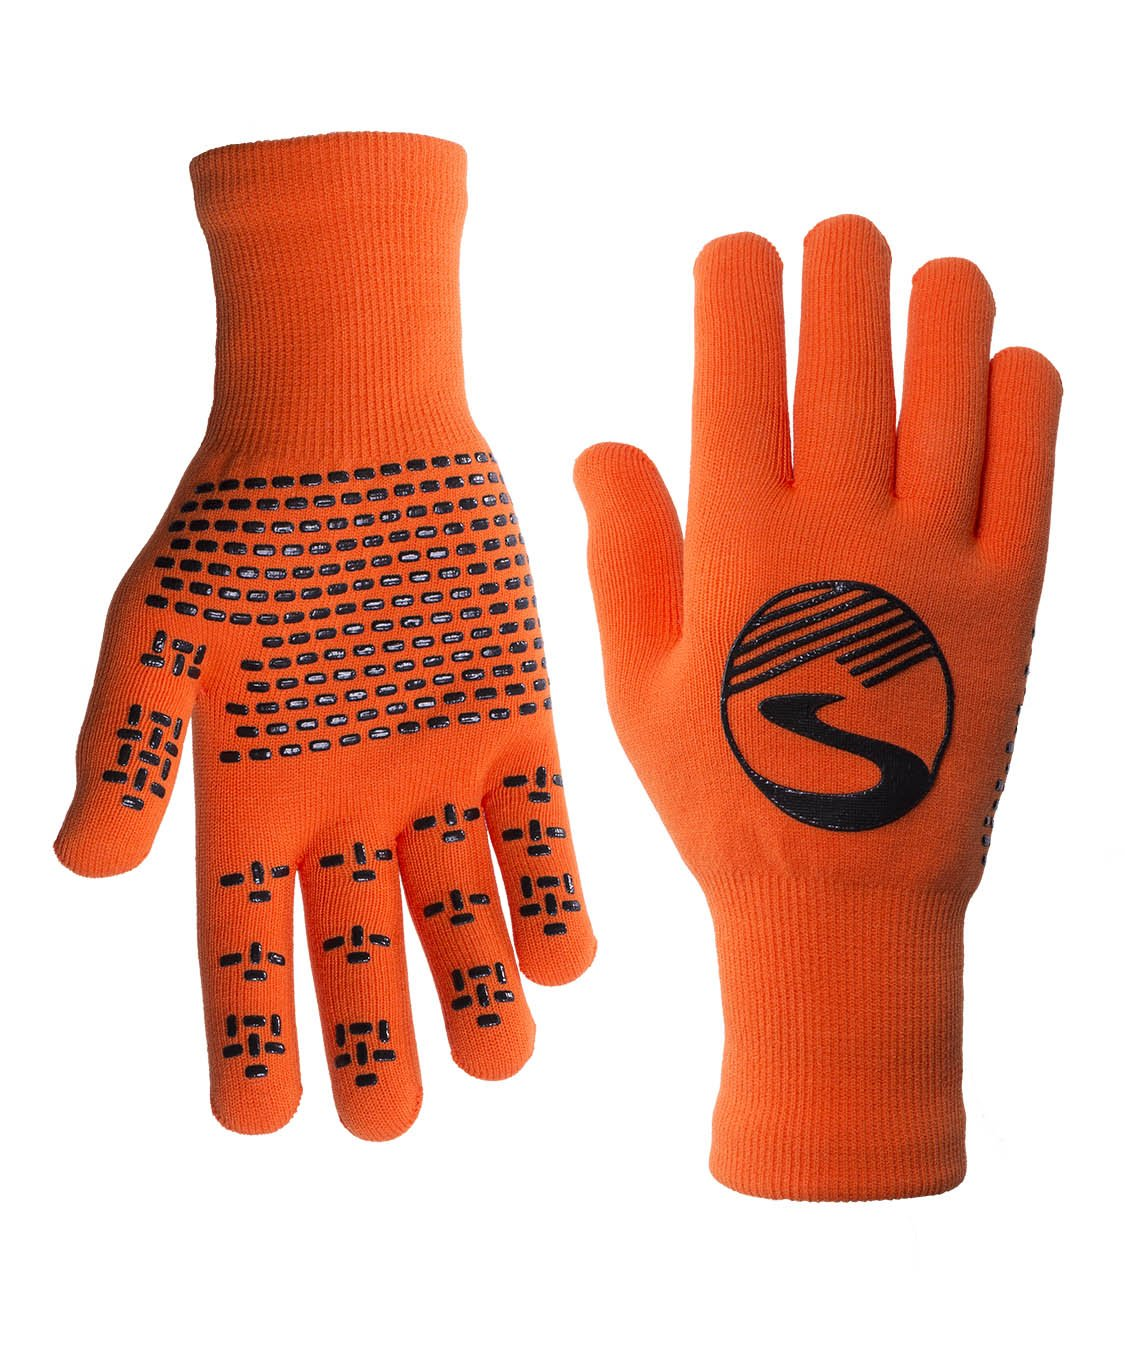 Crosspoint Waterproof Knit Gloves